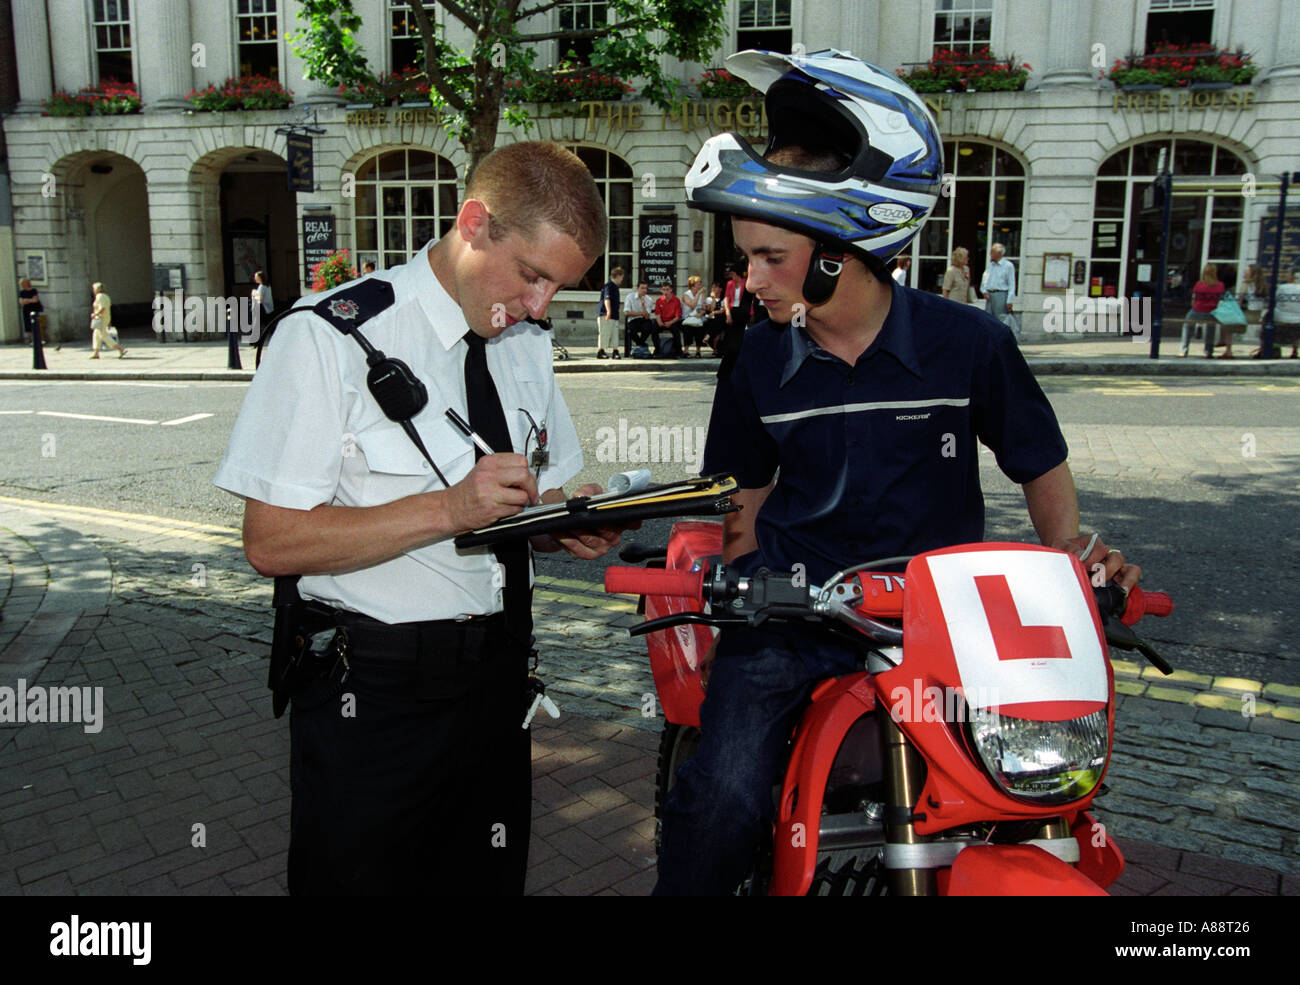 how to become a police officer uk